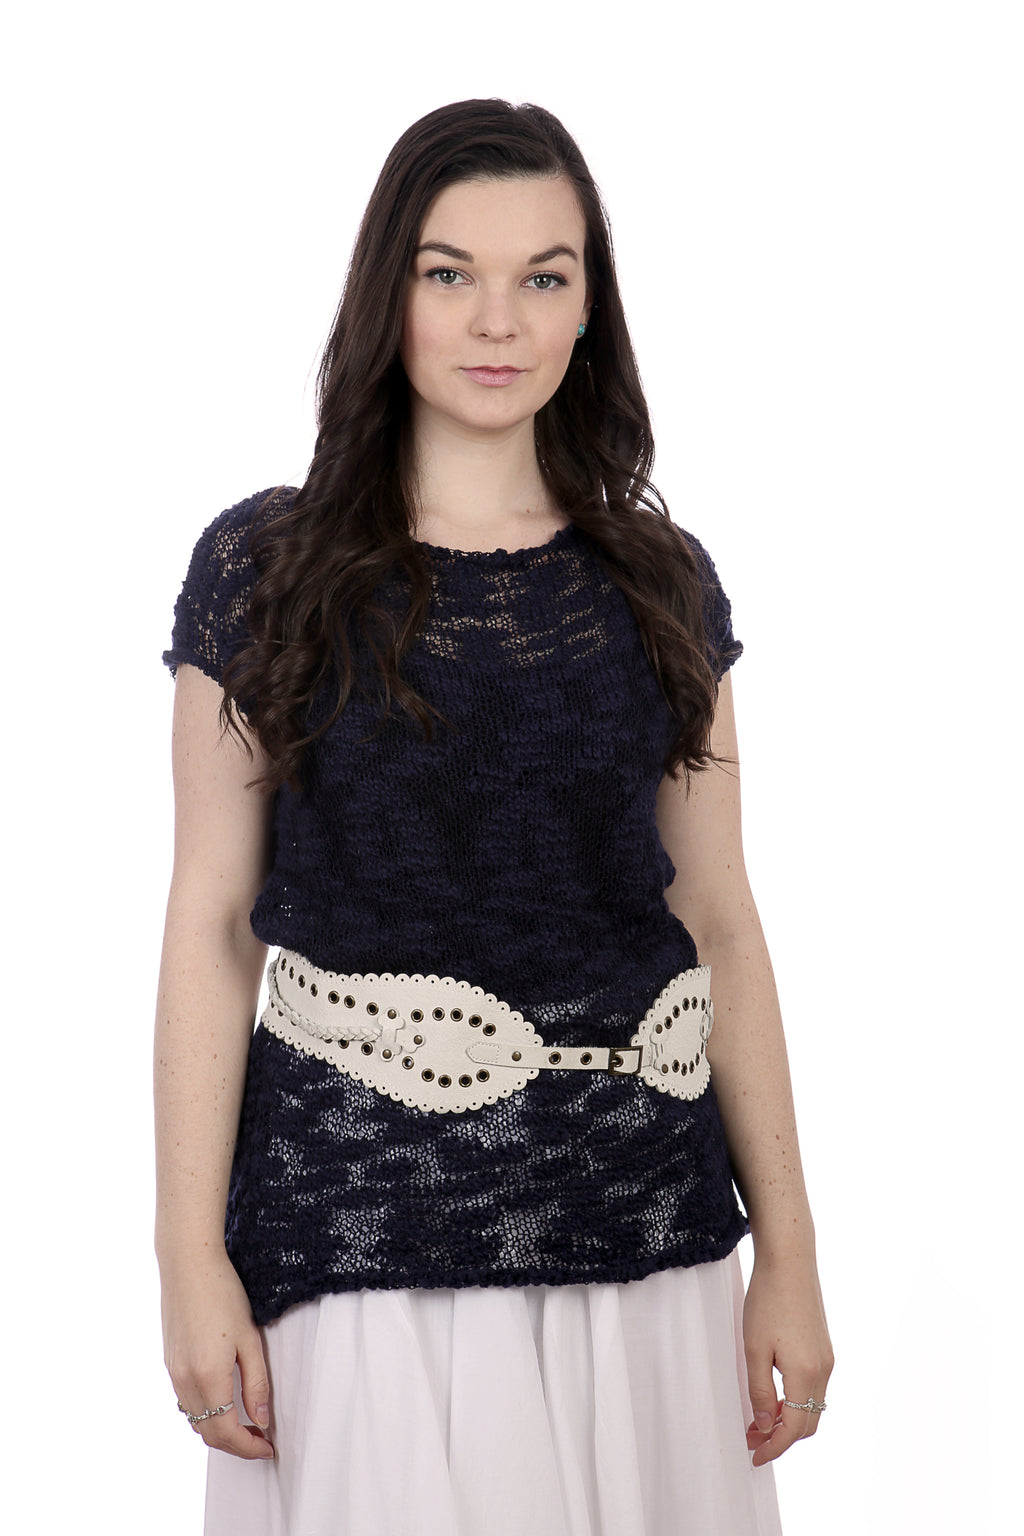 SHORT SLEEVES SUMMER TOP - DARK BLUE